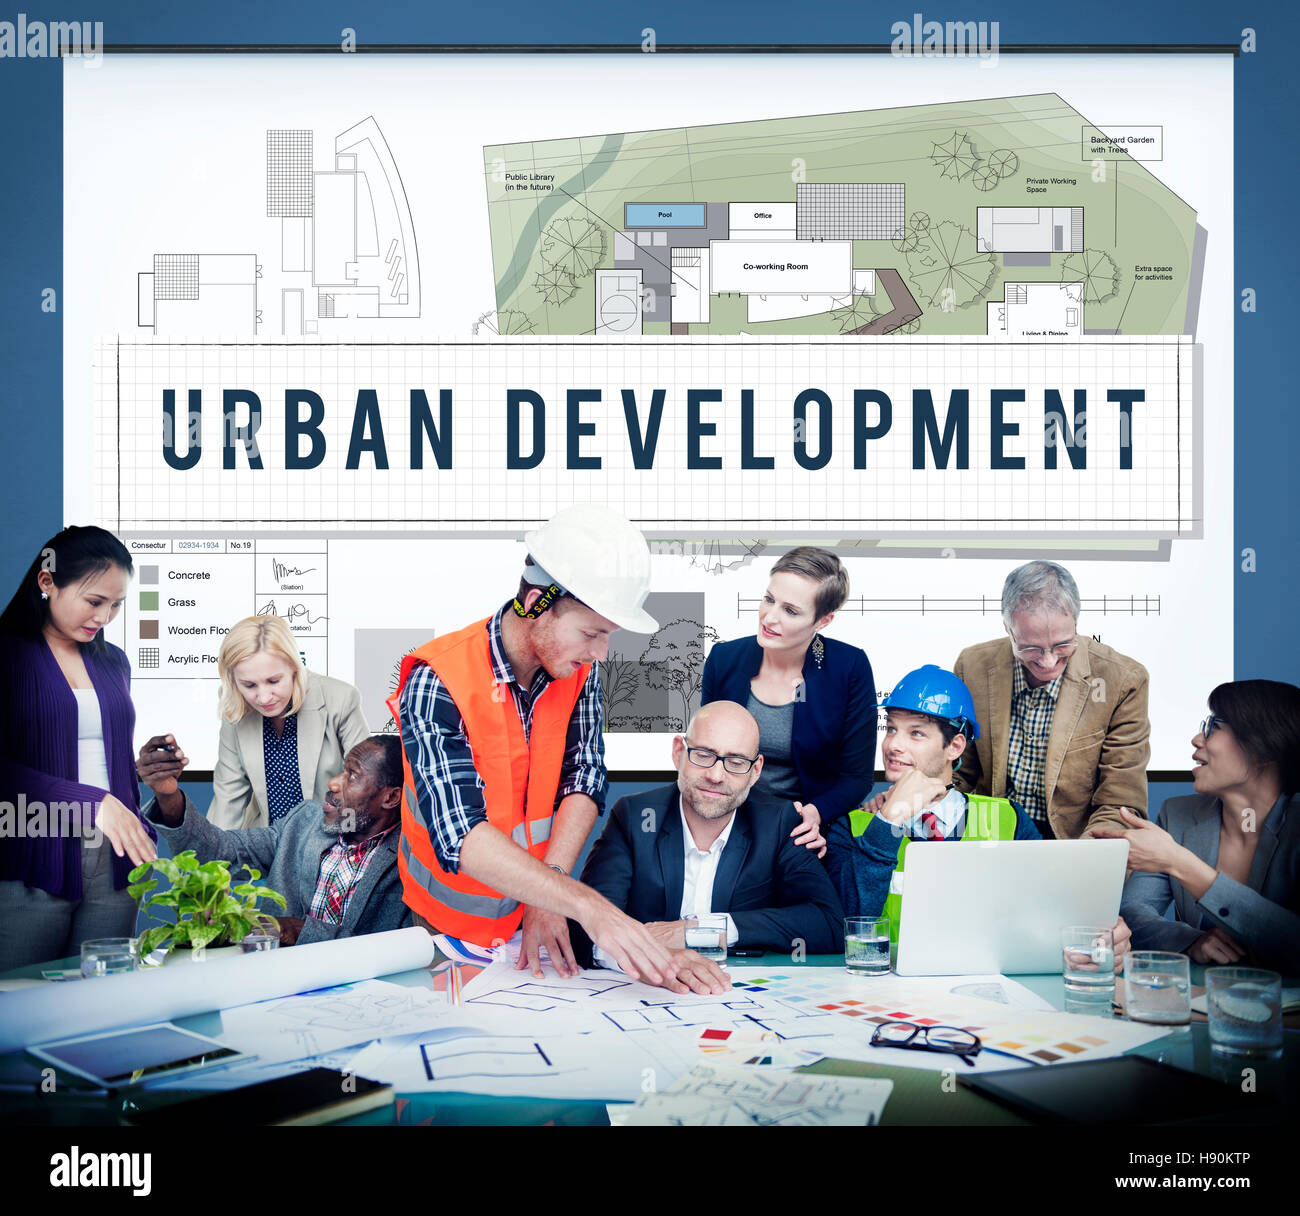 Urban Planning Development Build Design Concept - Stock Image